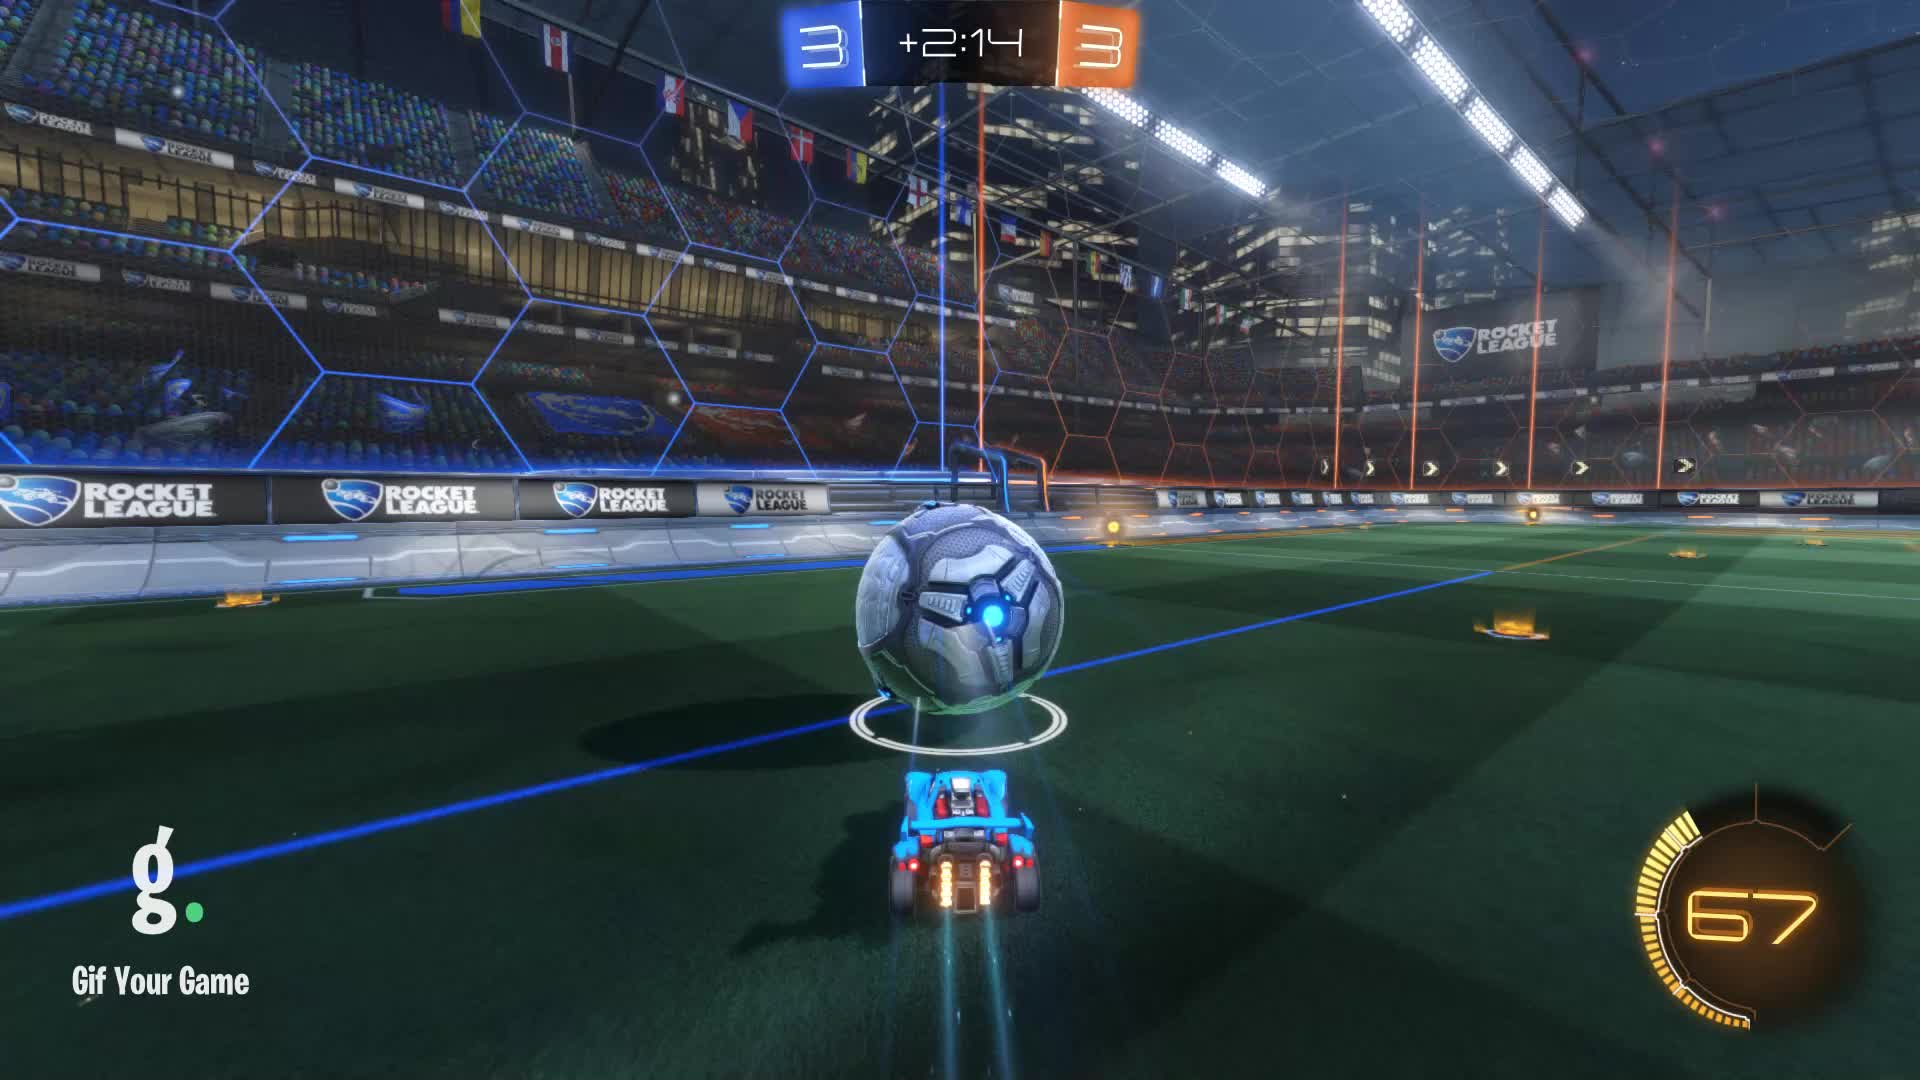 <AstroS>Wolf ツ, Gif Your Game, GifYourGame, Rocket League, RocketLeague, Goal 7: <AstroS>Wolf ツ GIFs